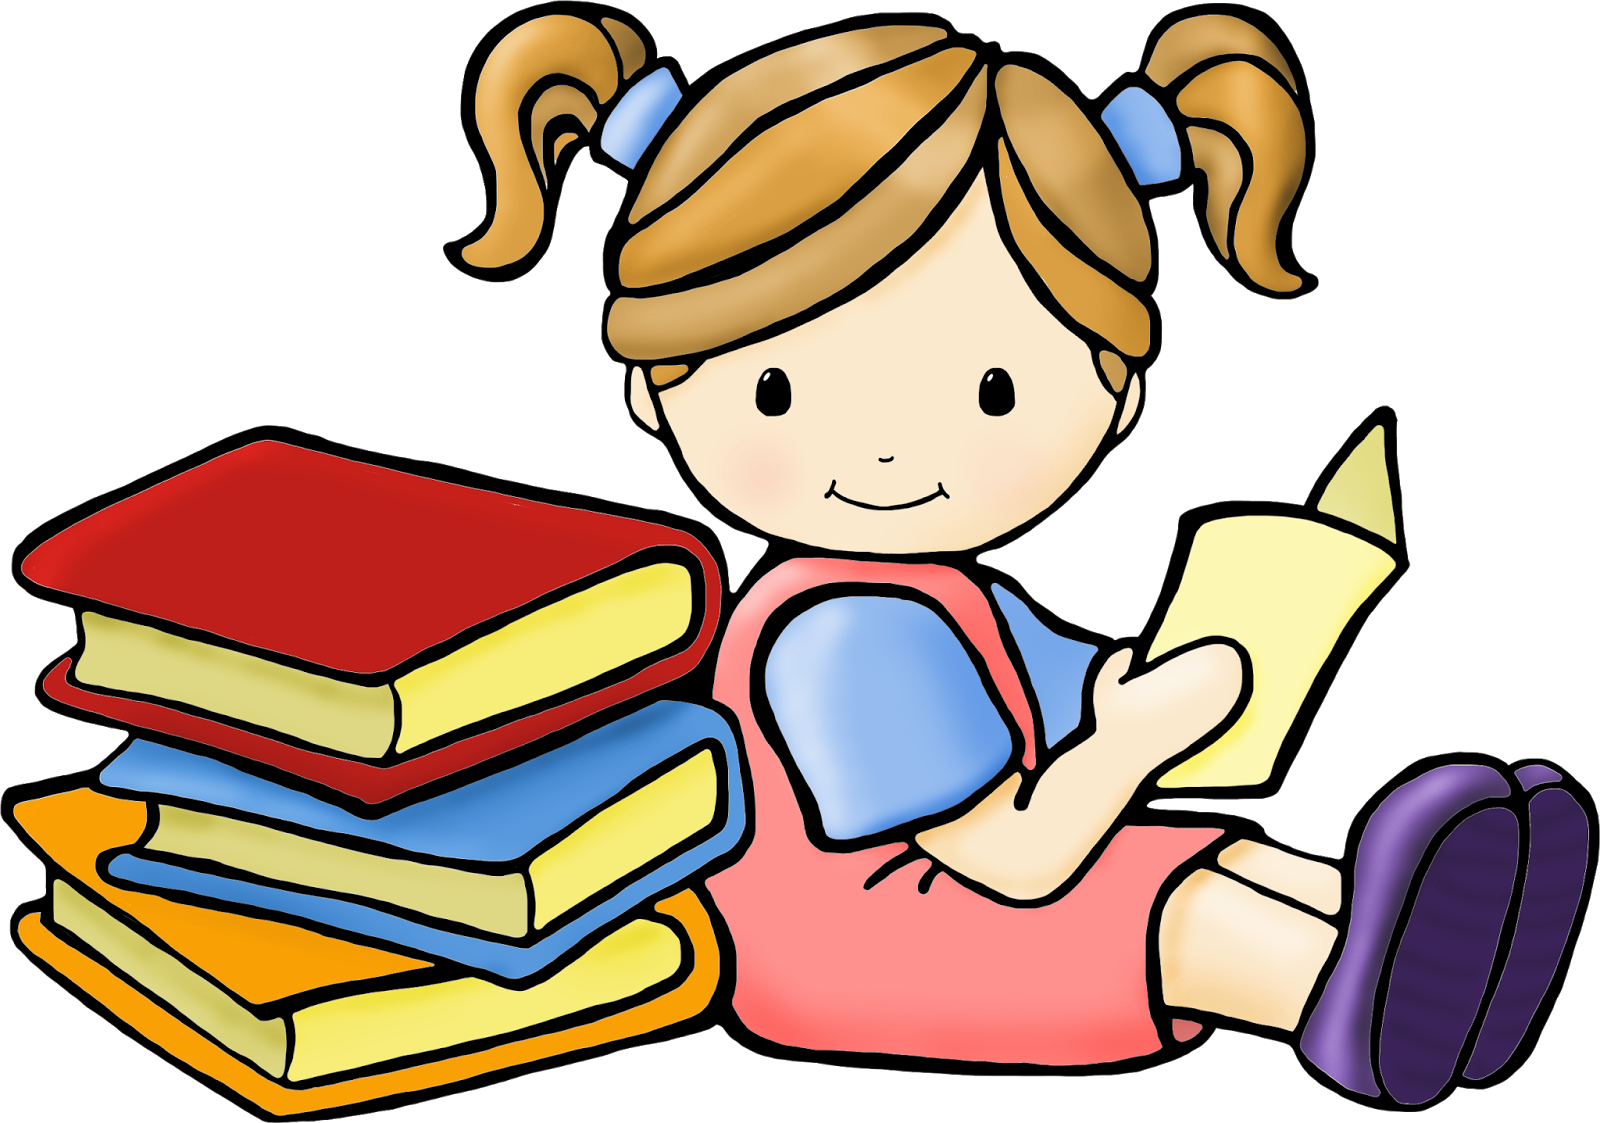 Kid reading png. Clip art images cindy